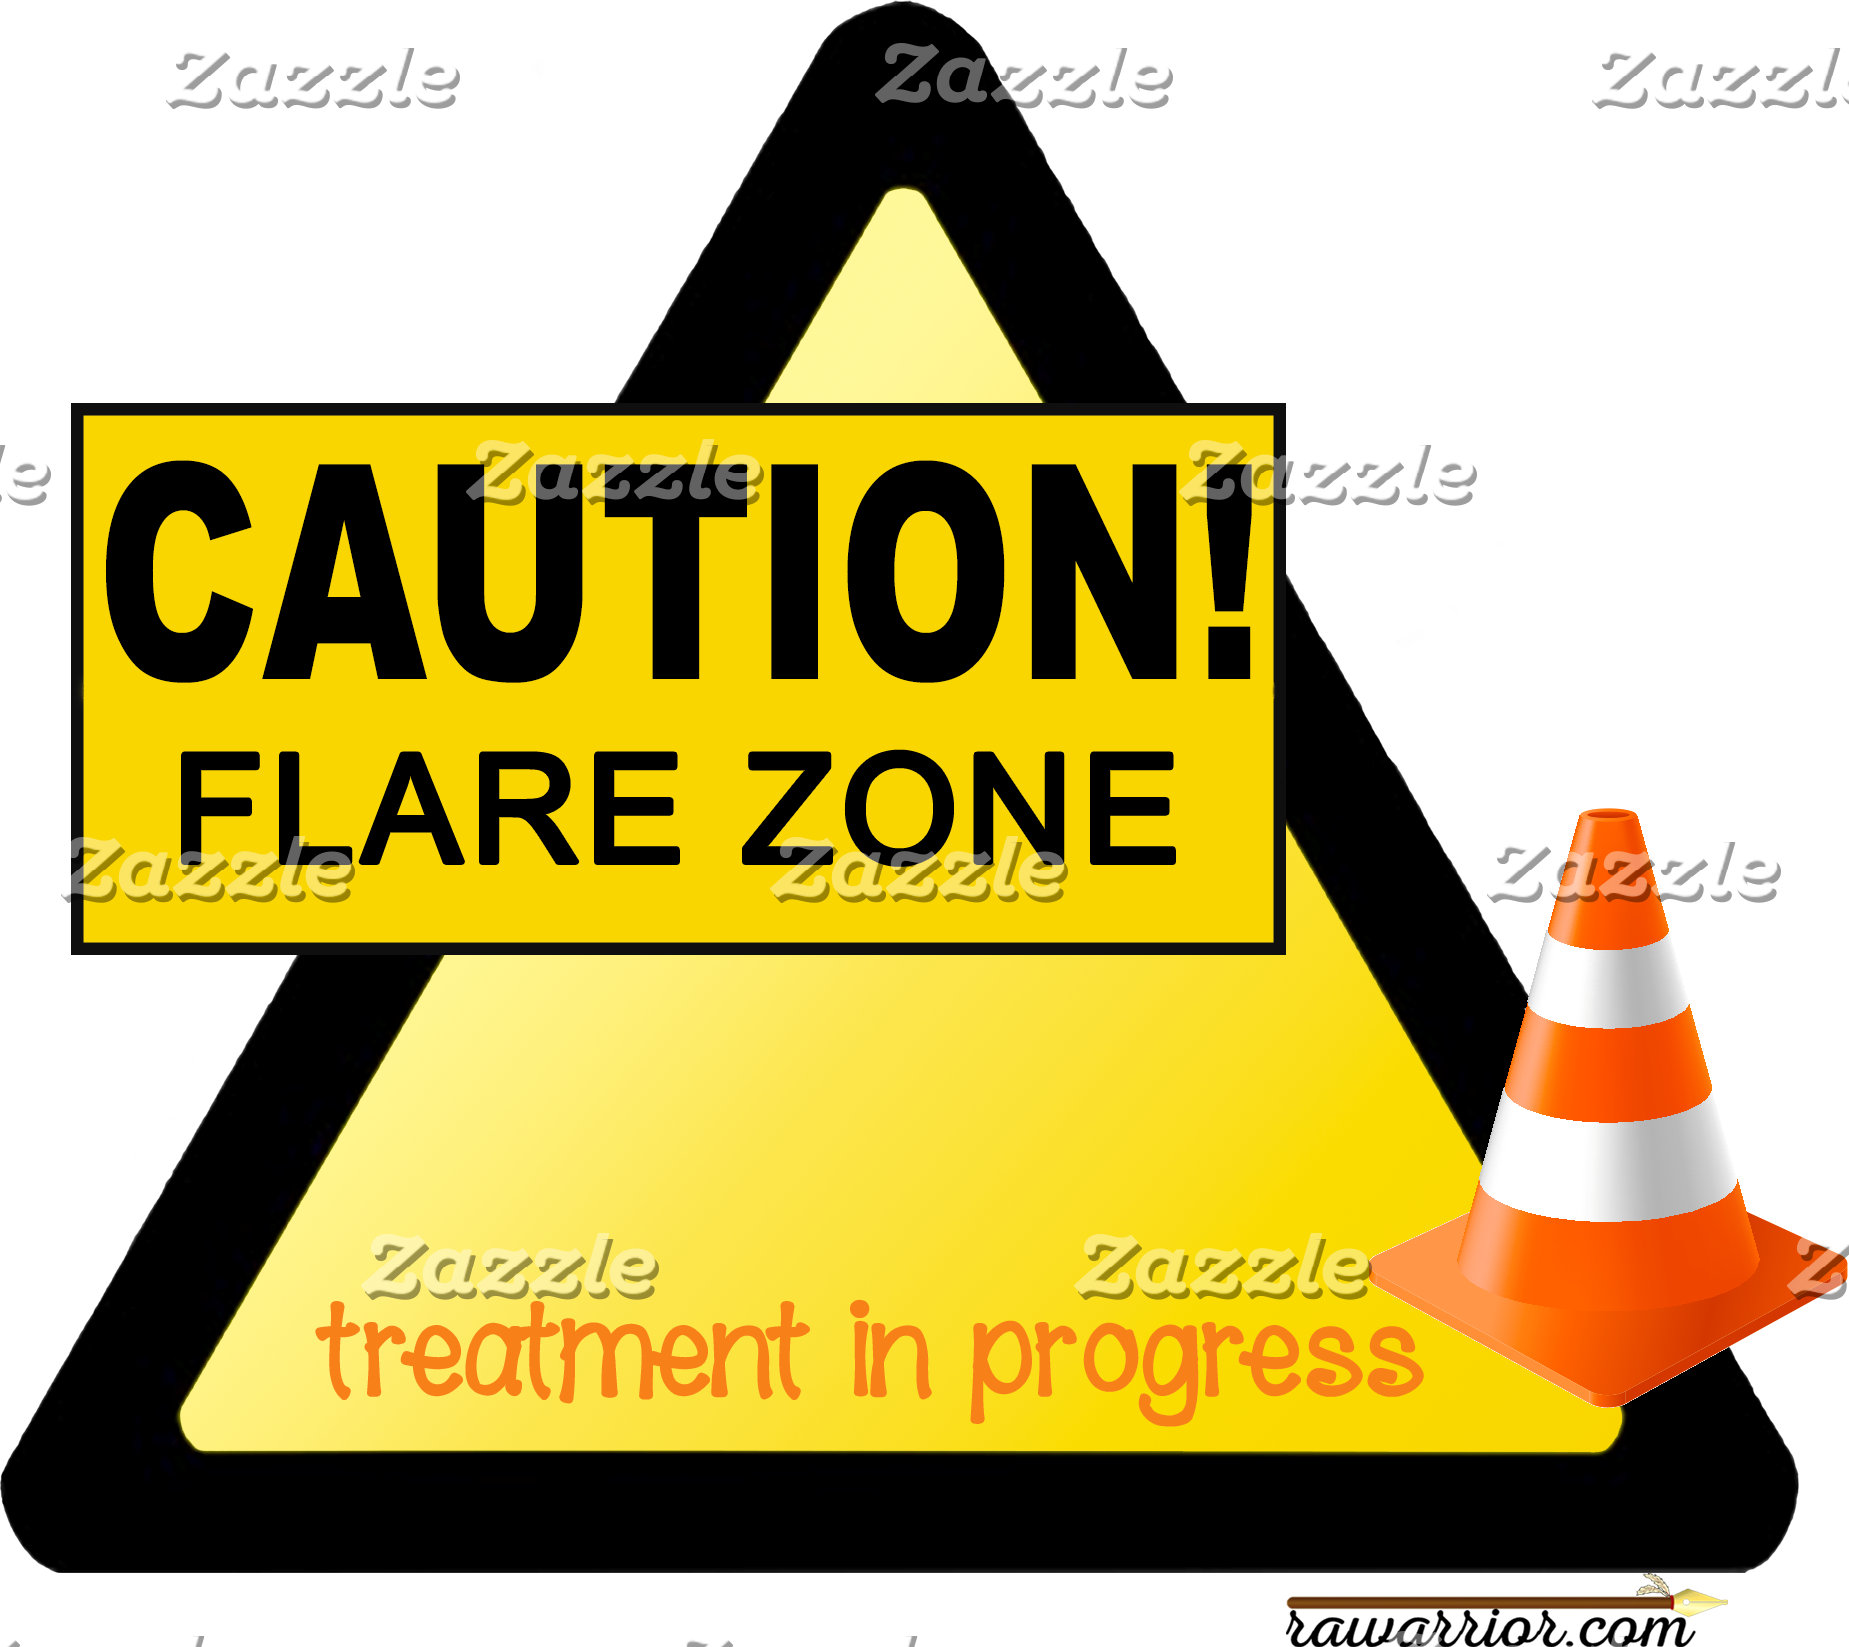 Caution: Flare Zone